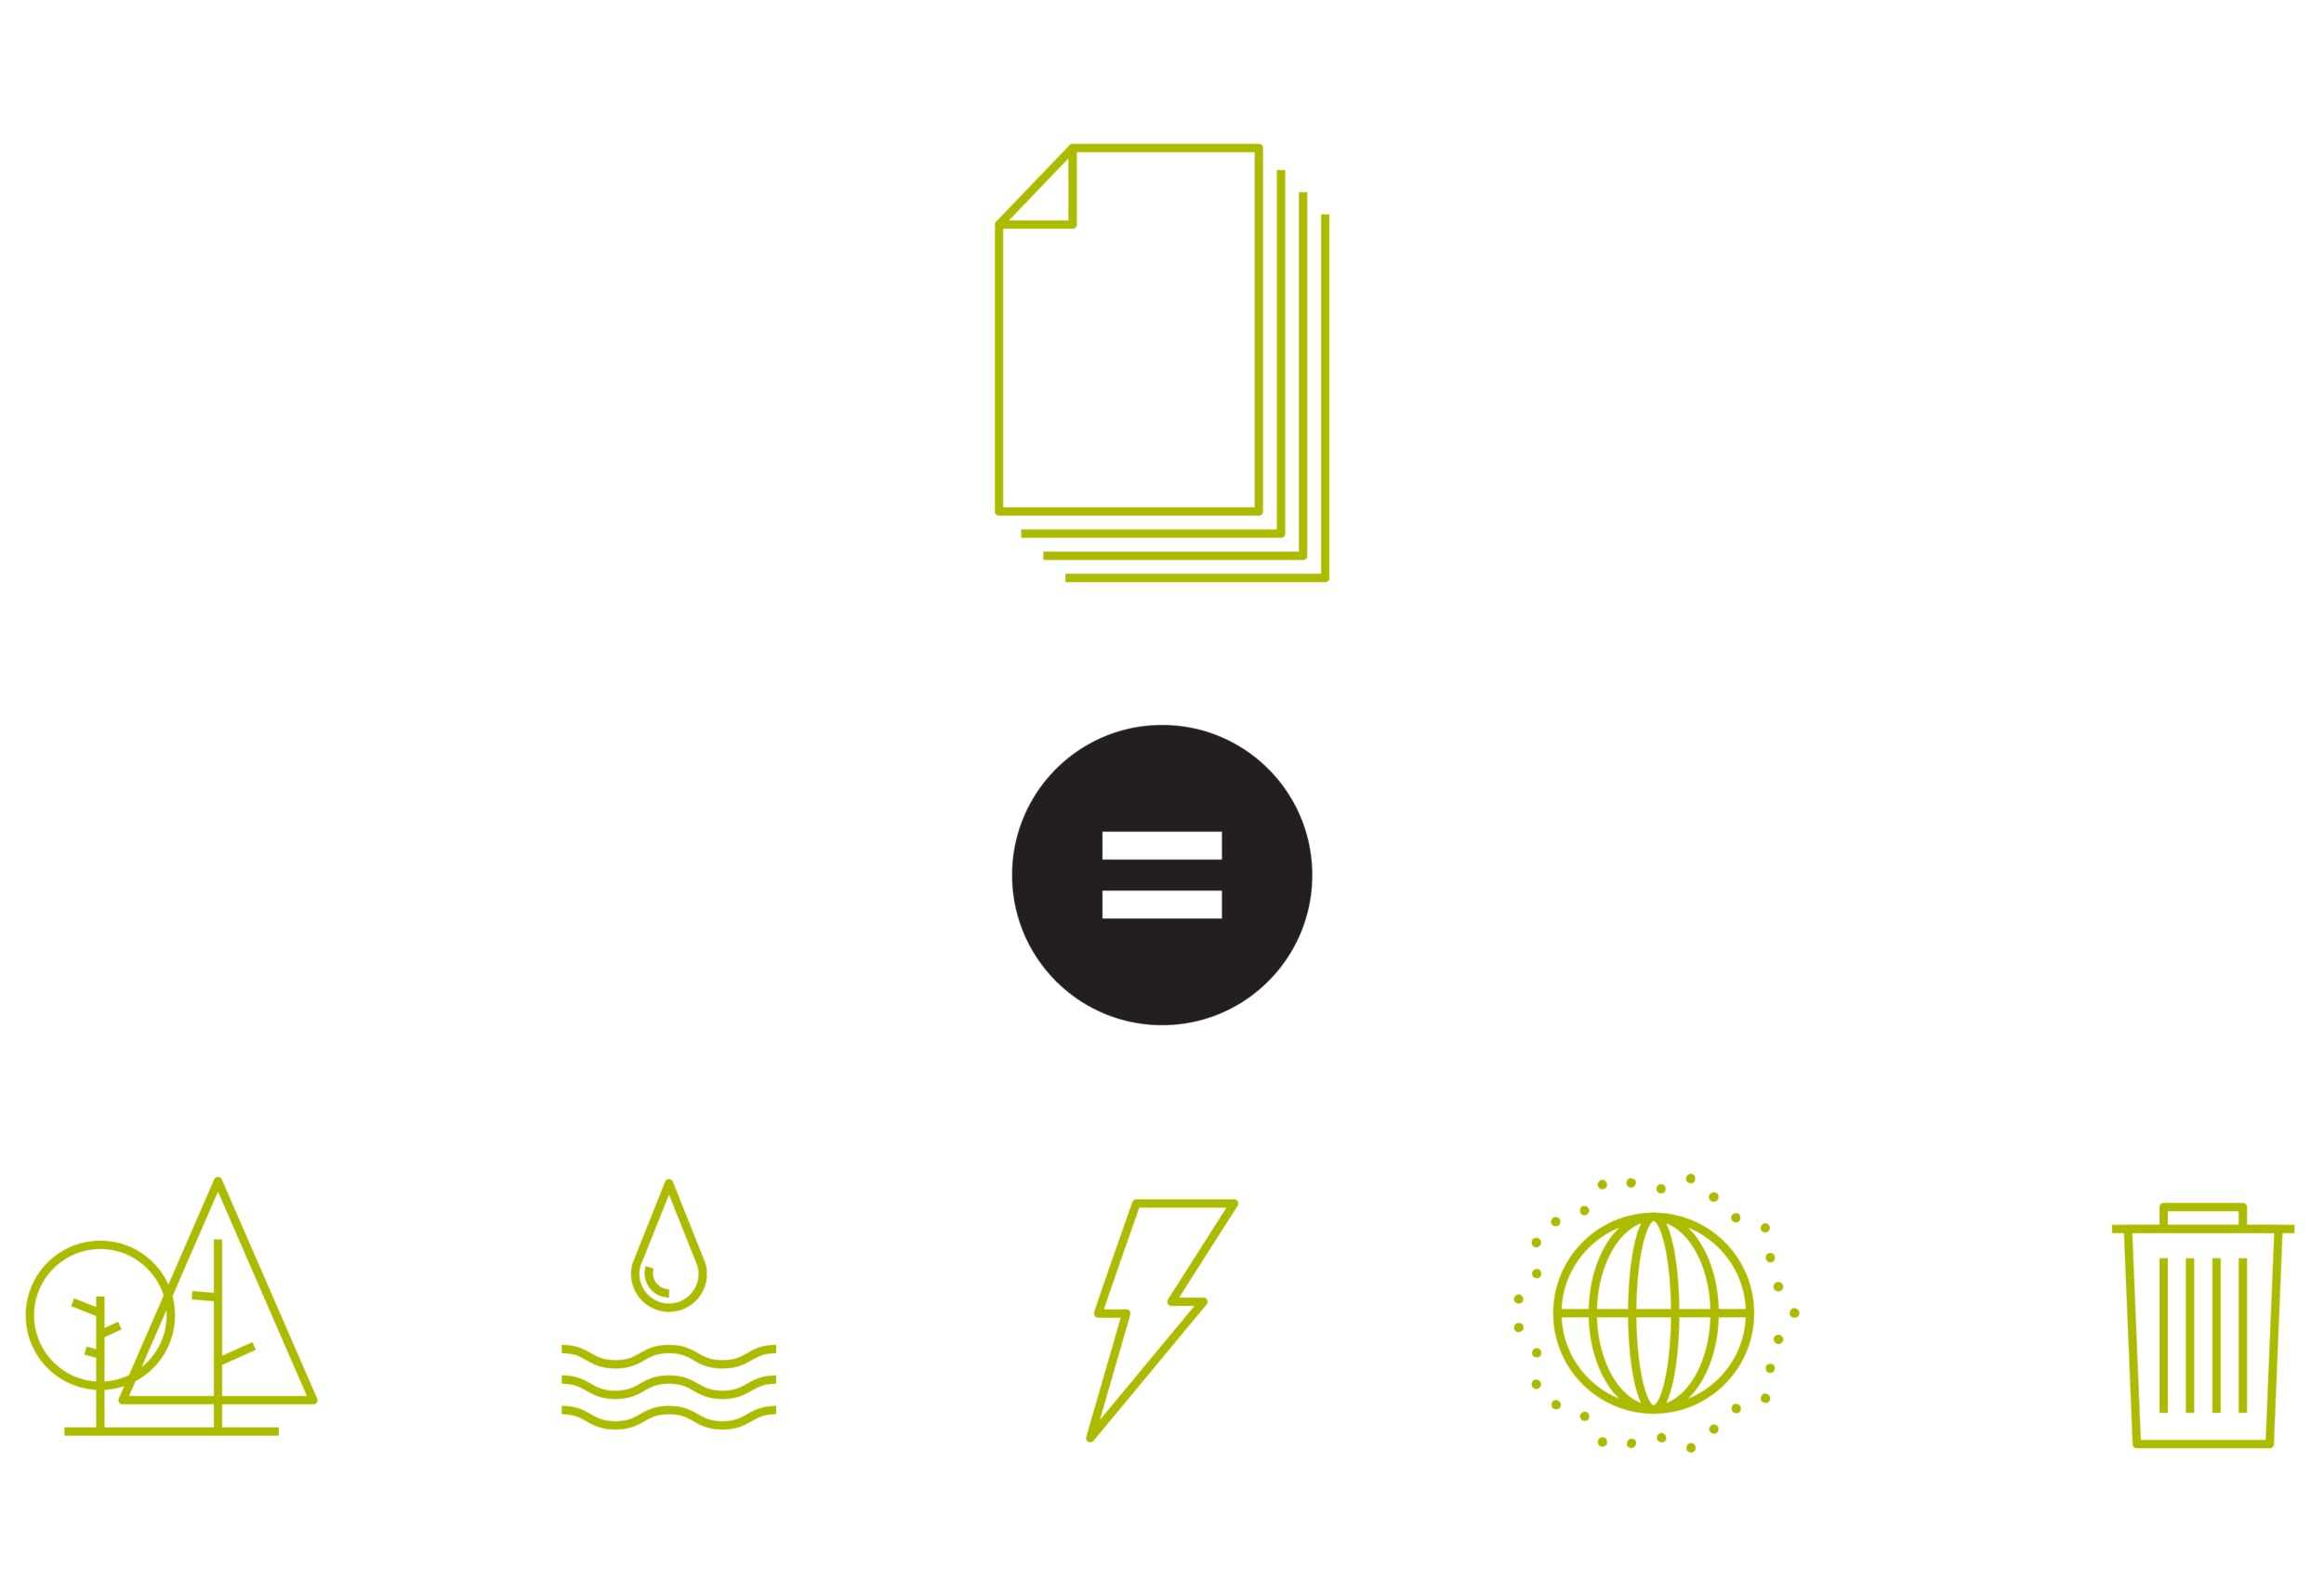 Wood. Energy. Greenhouse Gases. Water. Solid Waste. - Calculate your savings from using New Leaf Paper.